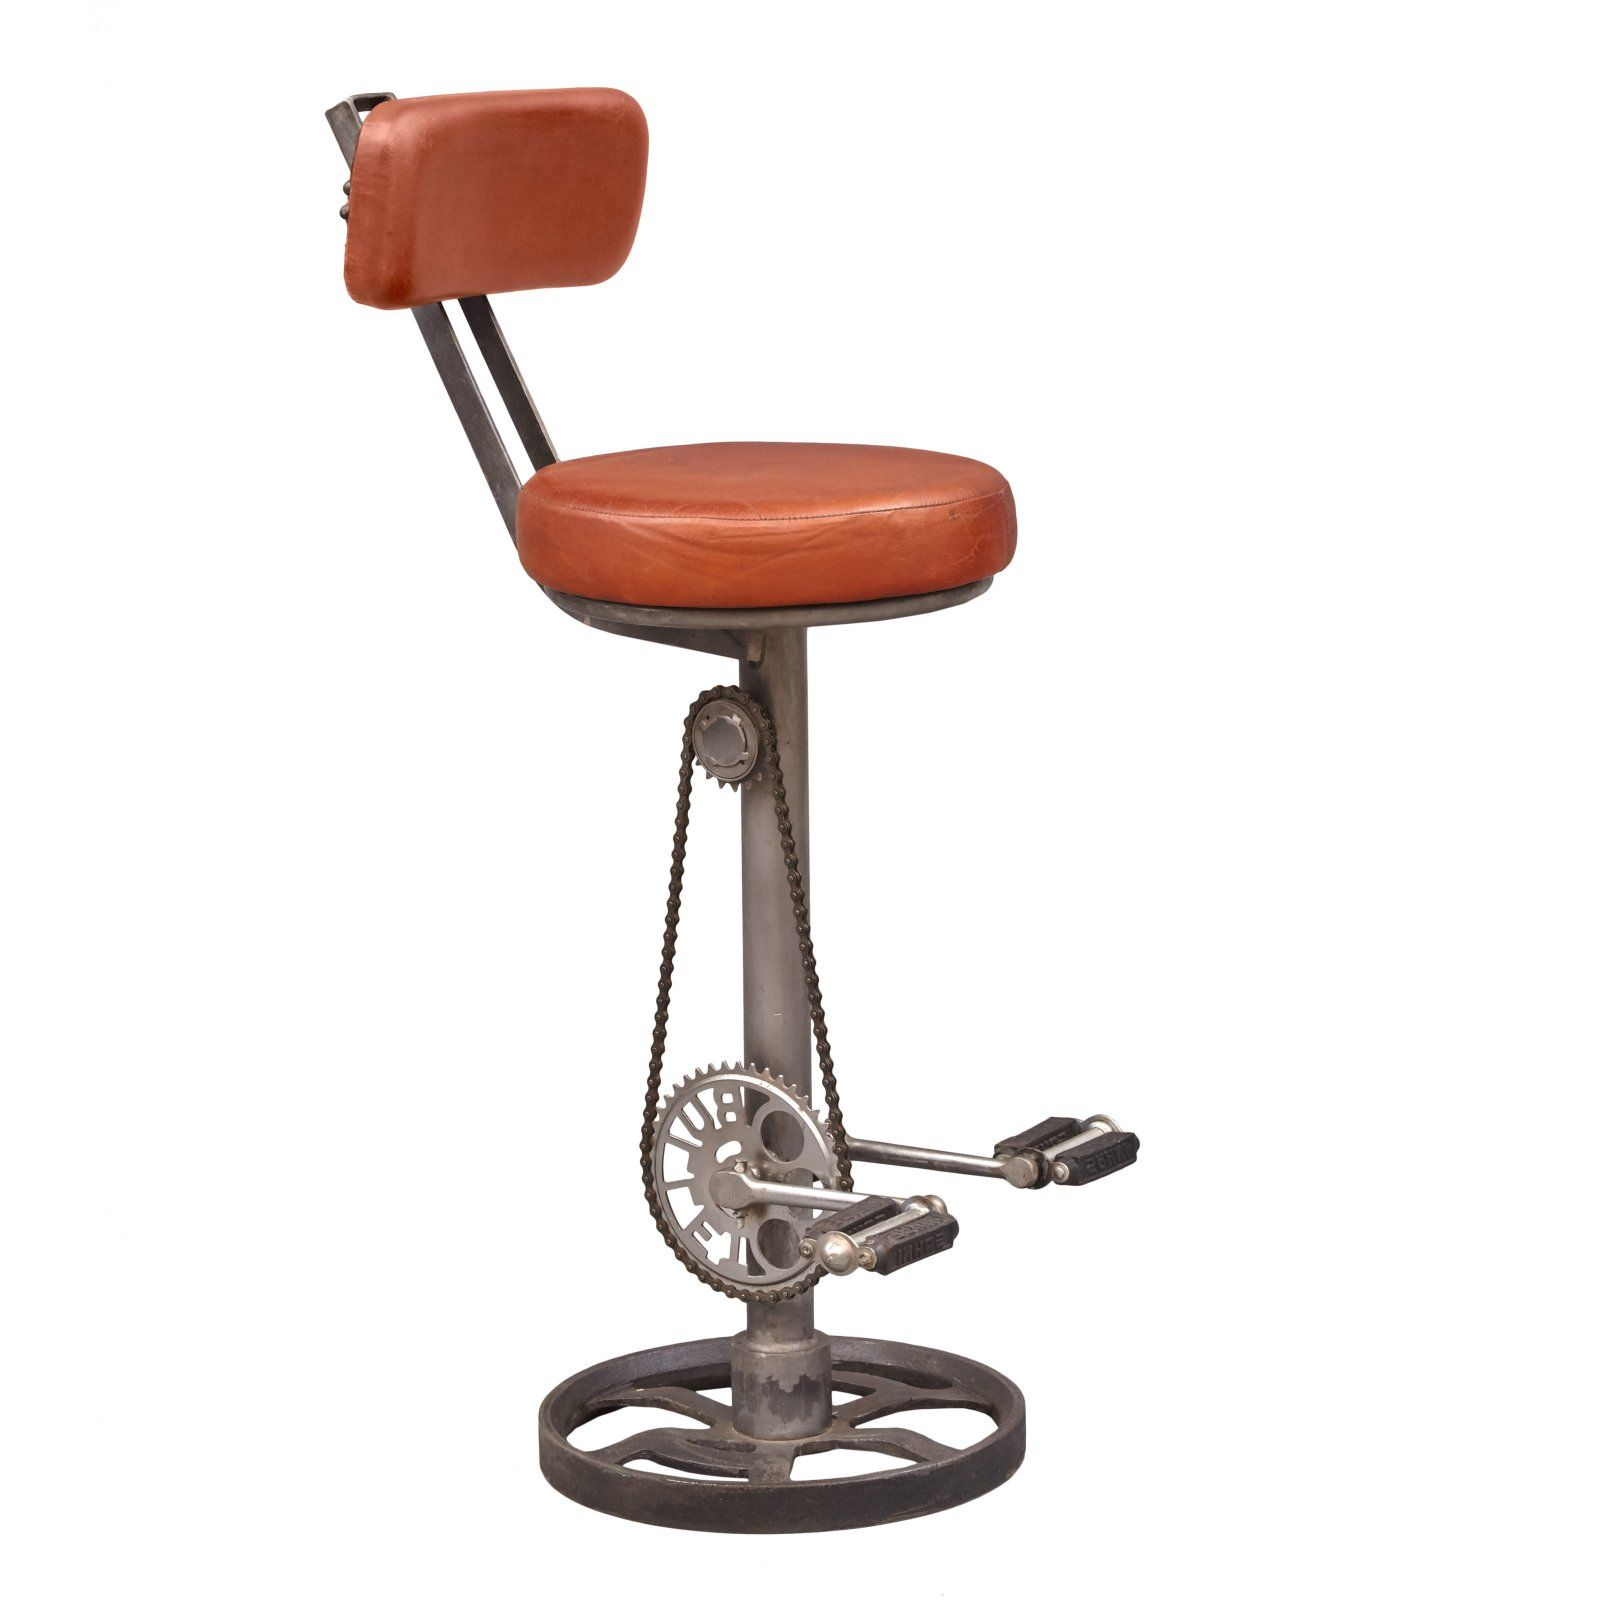 Admirable Right2Home Kent Adjustable Leather Bar Stool With Bicycle Alphanode Cool Chair Designs And Ideas Alphanodeonline